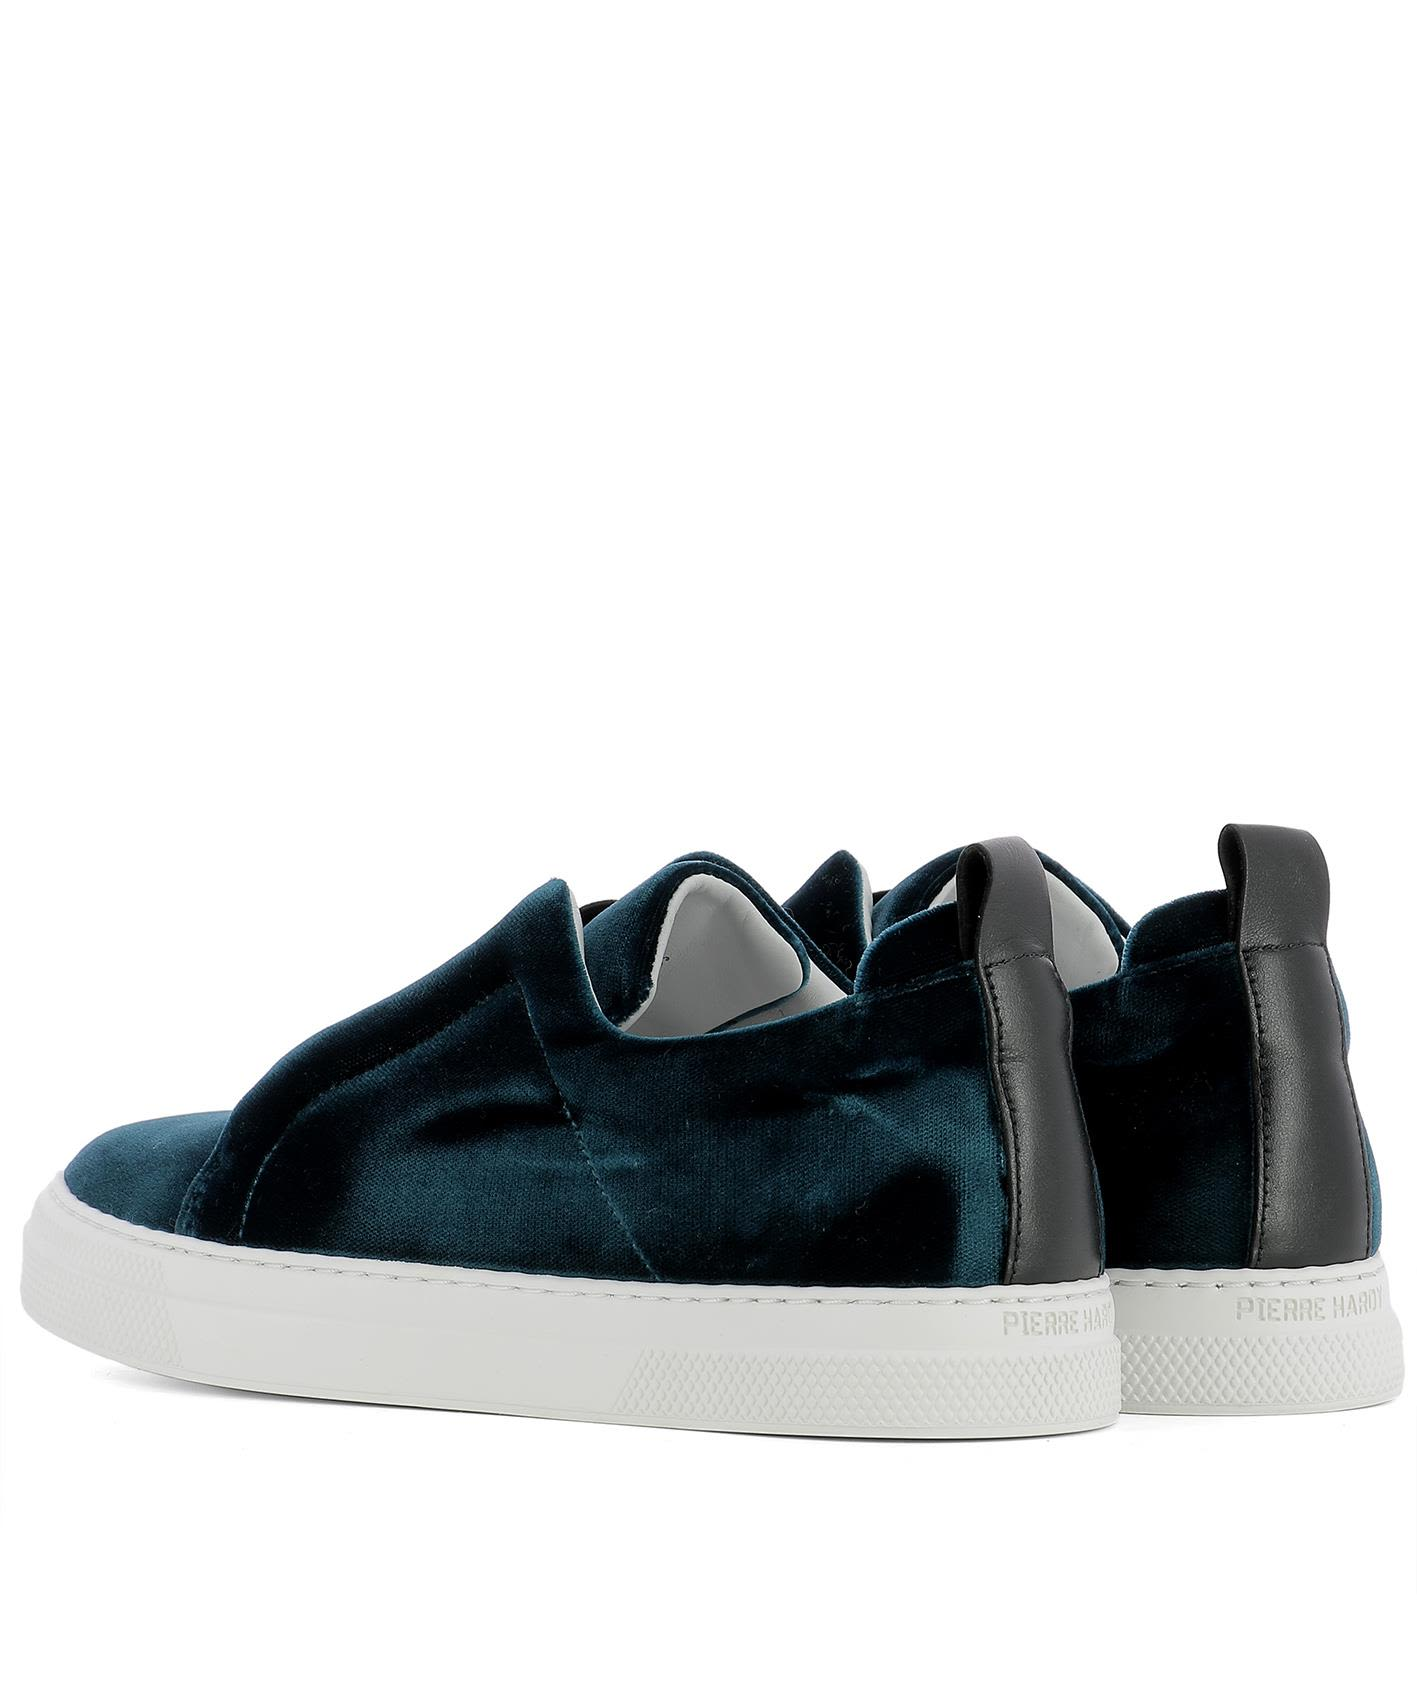 Pierre Hardy Women's Blue Velve... shop for online cheap extremely buy cheap visit get authentic cheap price CwpdqdBCo